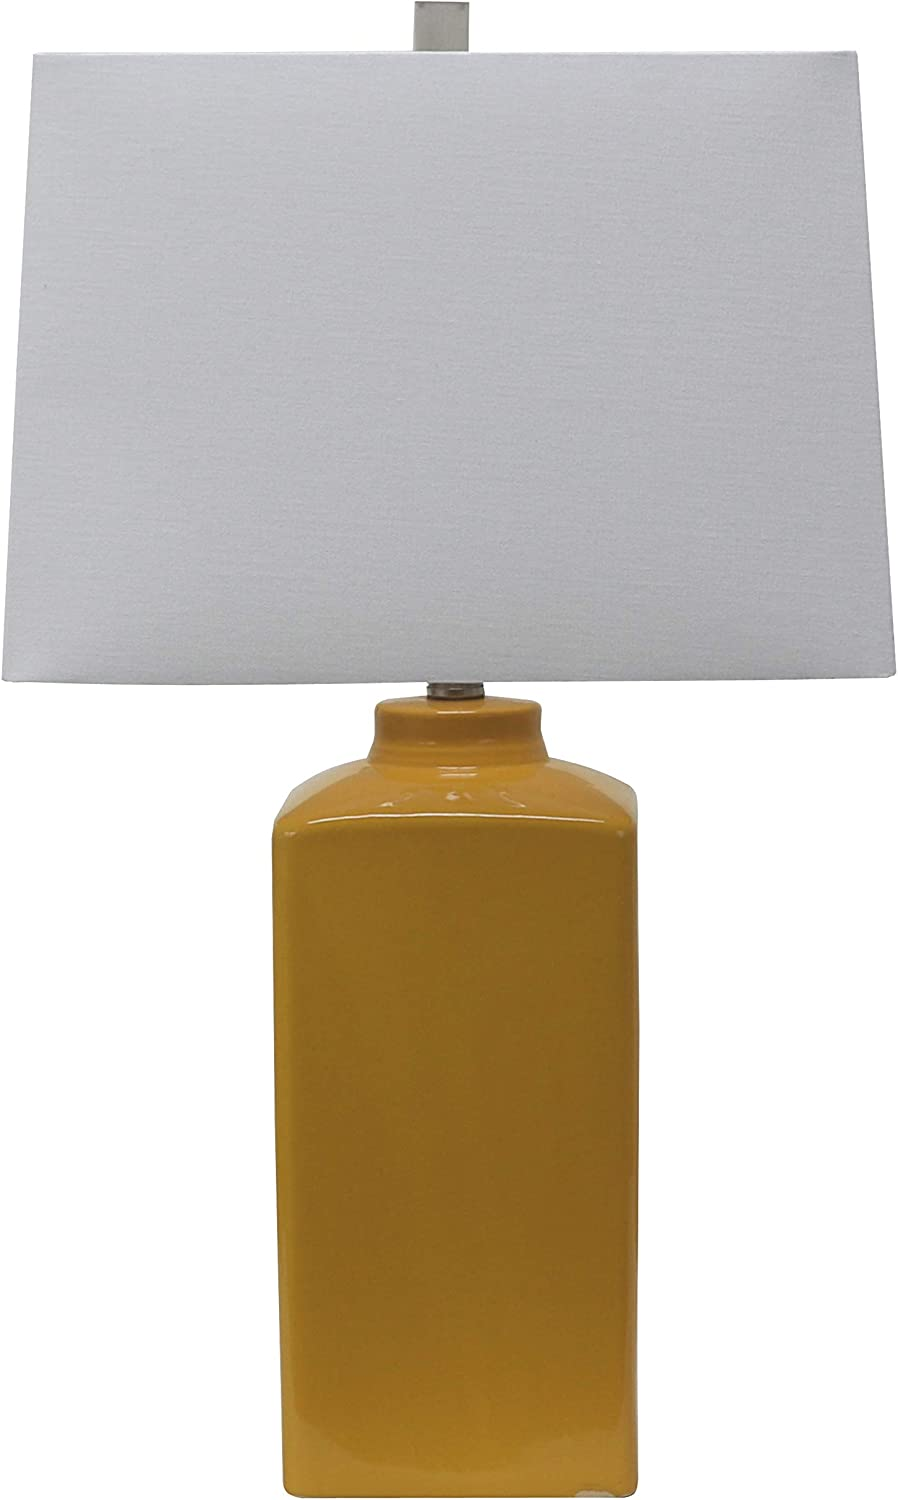 Decor Therapy TL17299 Table Lamp, Mustard Yellow